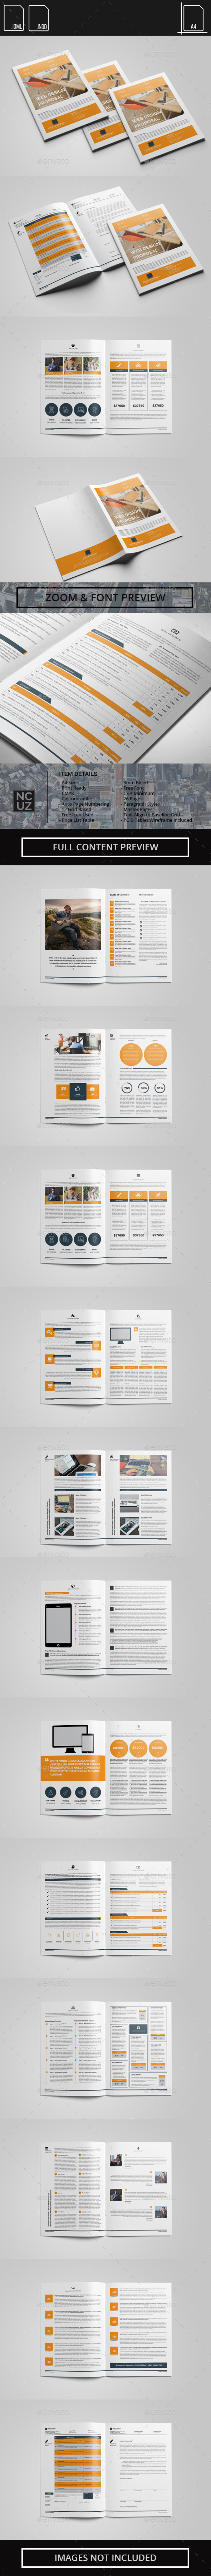 Proposal Web Design and Web Development - Proposals & Invoices Stationery